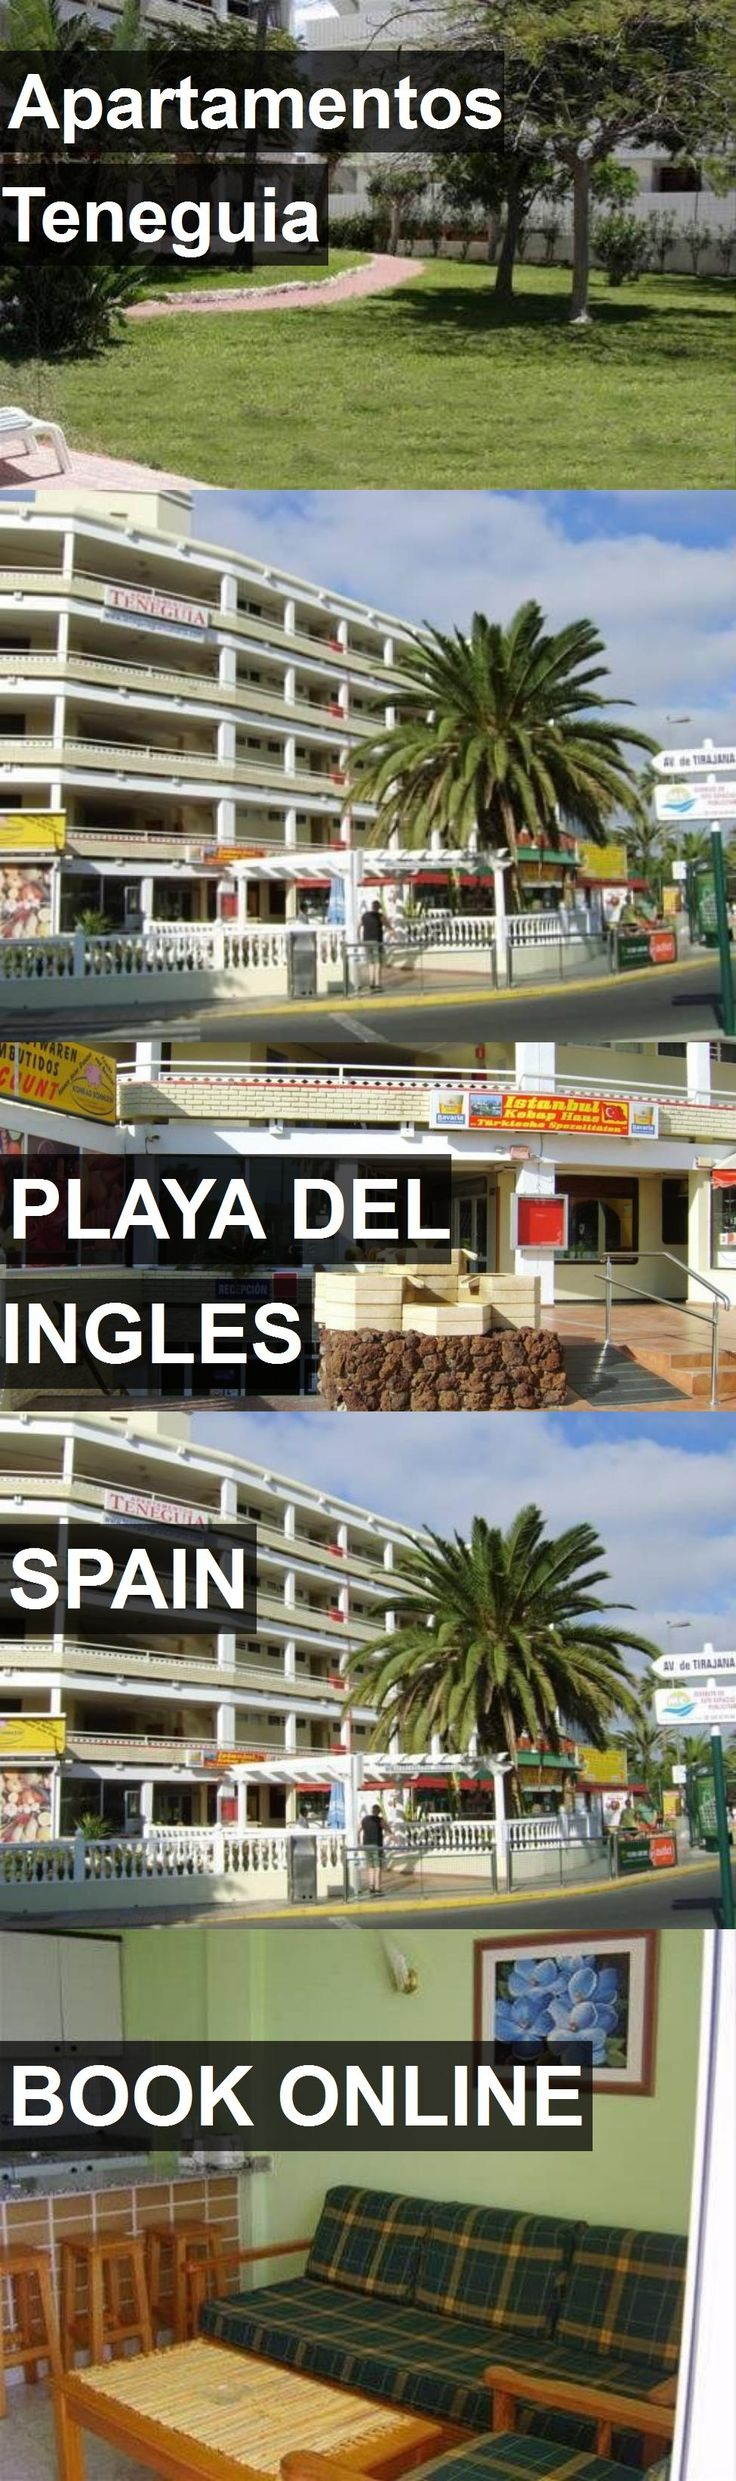 Hotel Apartamentos Teneguia in Playa del Ingles, Spain. For more information, photos, reviews and best prices please follow the link. #Spain #PlayadelIngles #travel #vacation #hotel